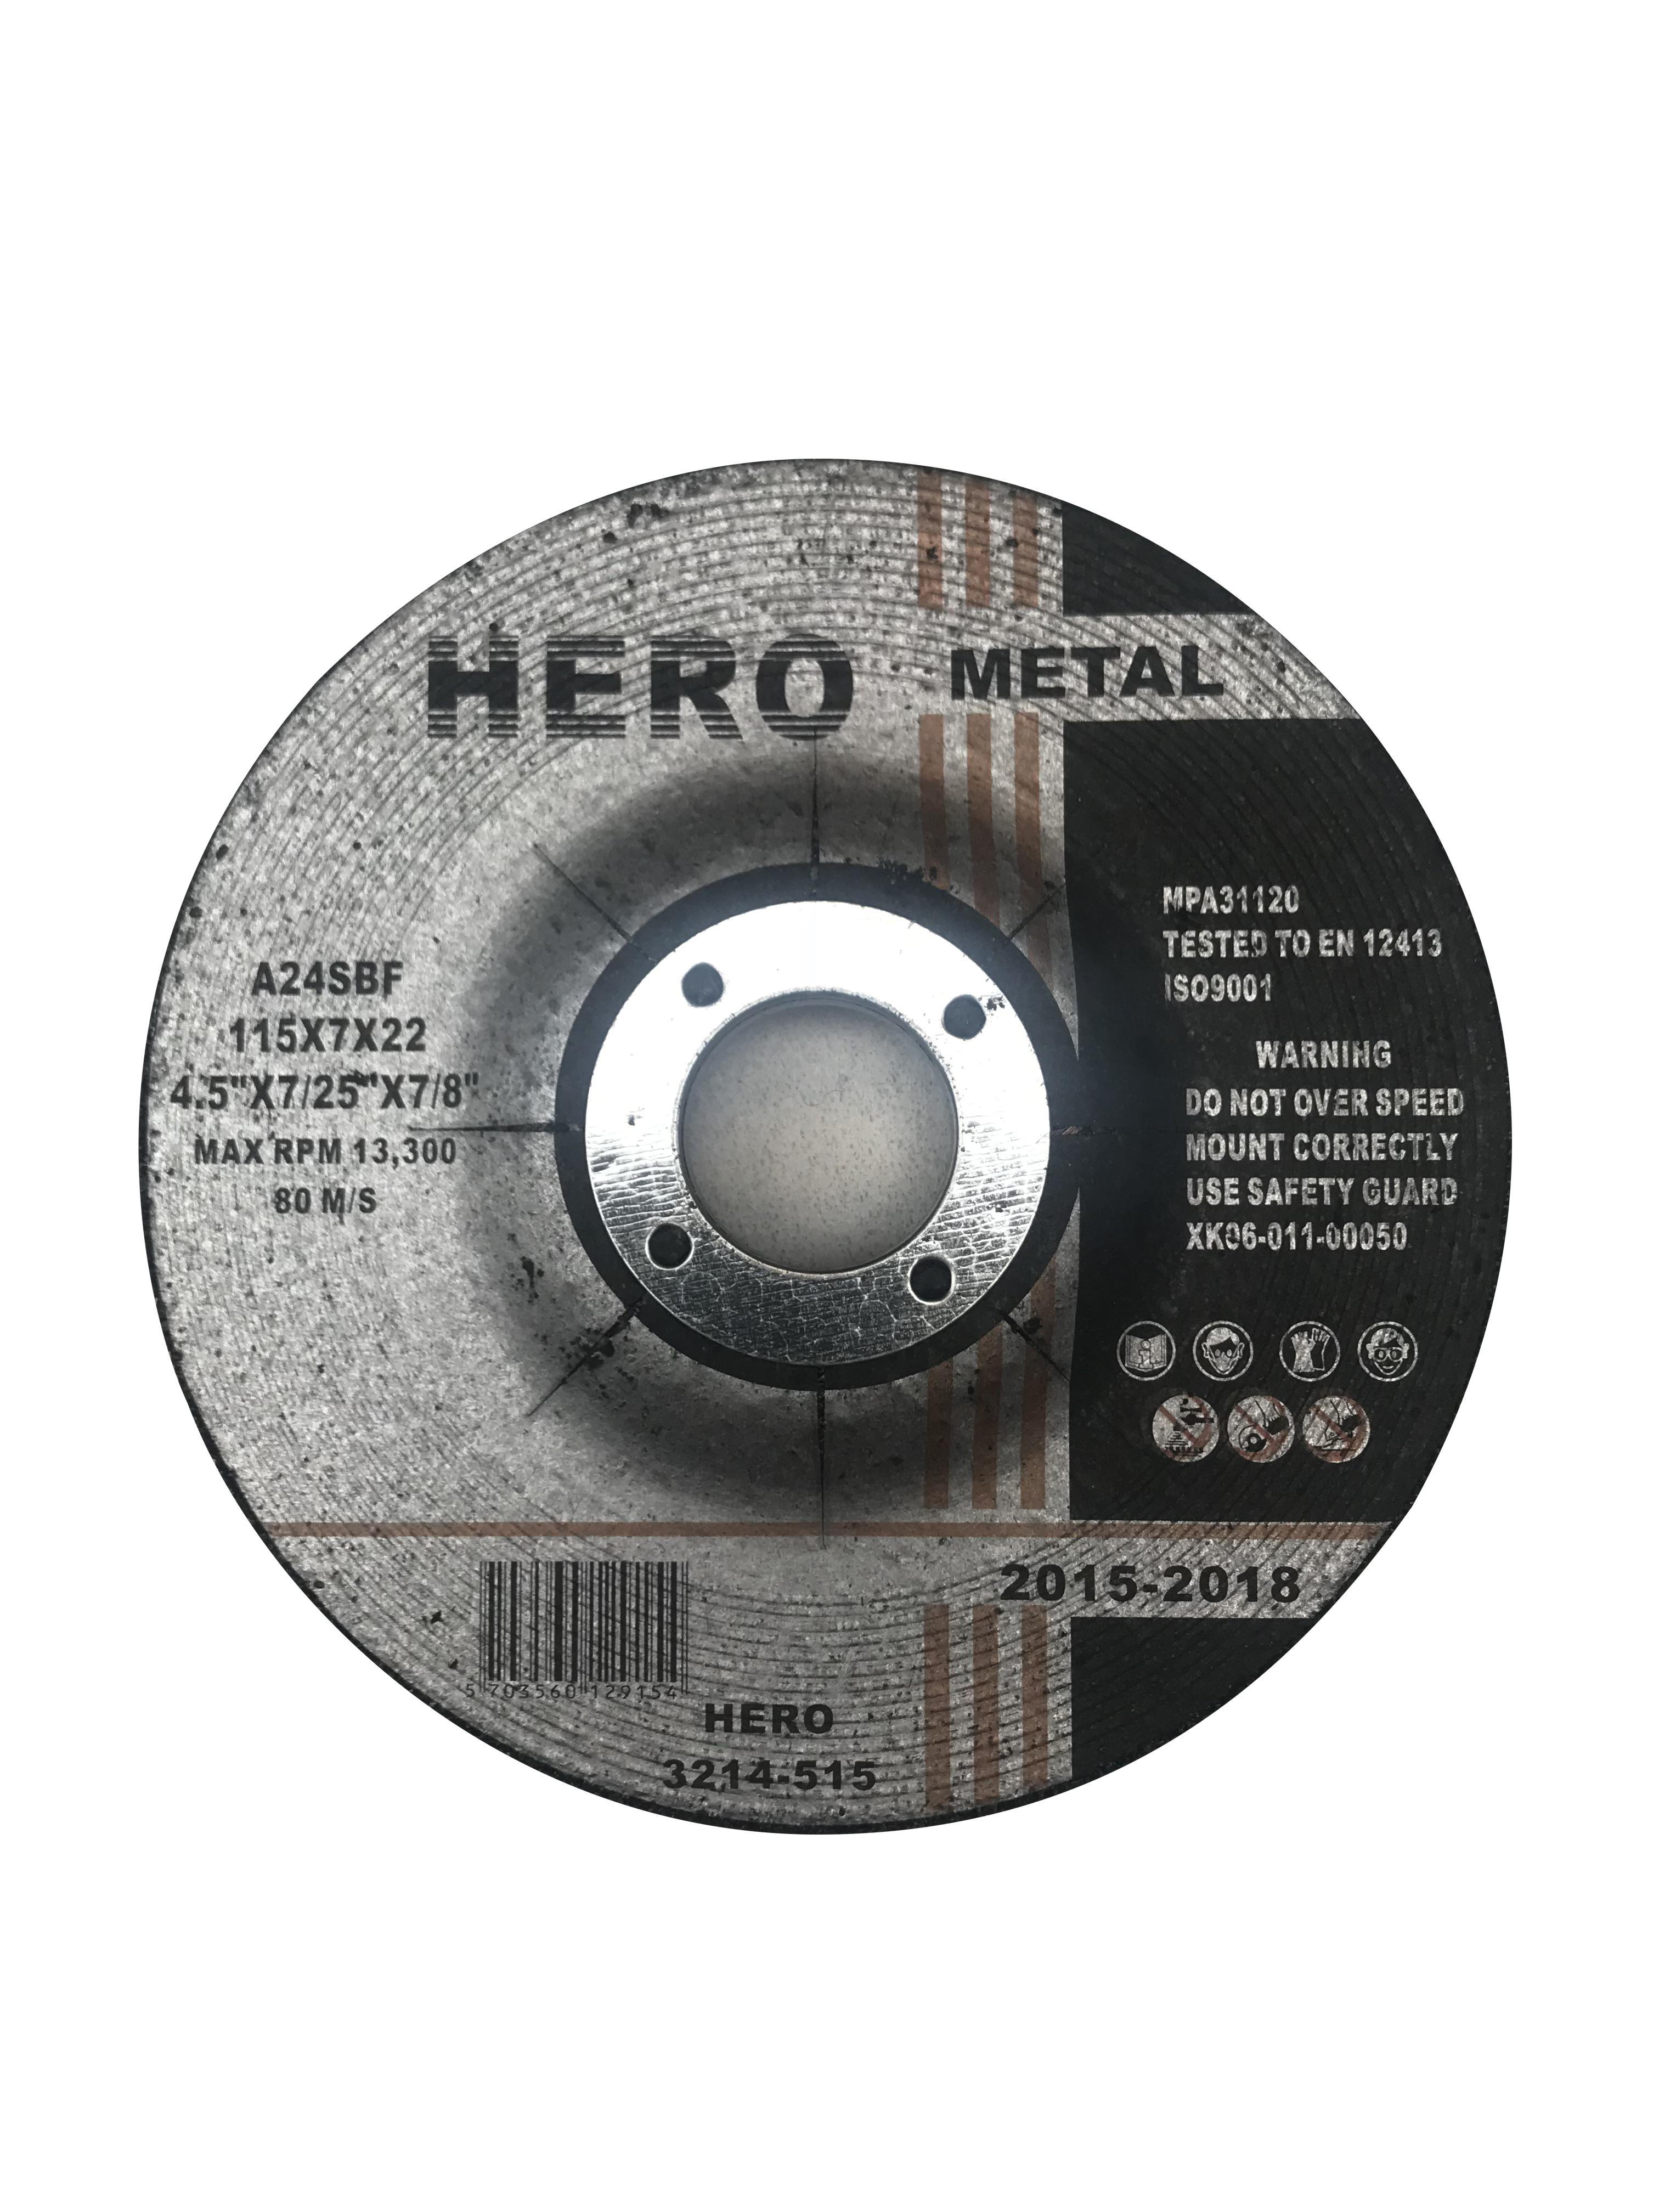 HERO Slibeskiver metal 7,0 x125 mm